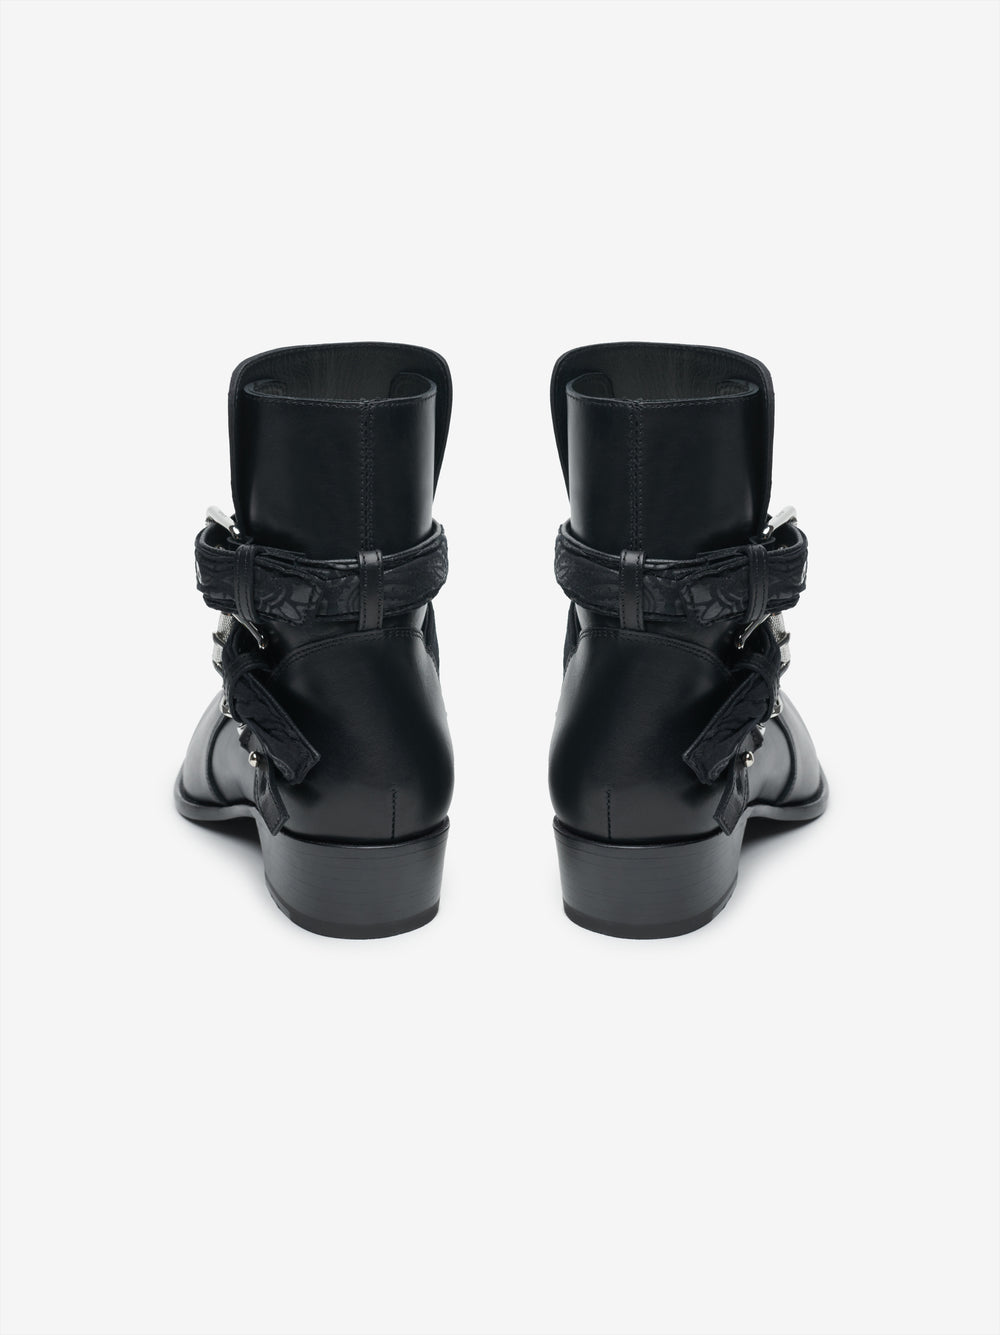 BLACK BANDANA BUCKLE BOOT - BLACK / BLACK